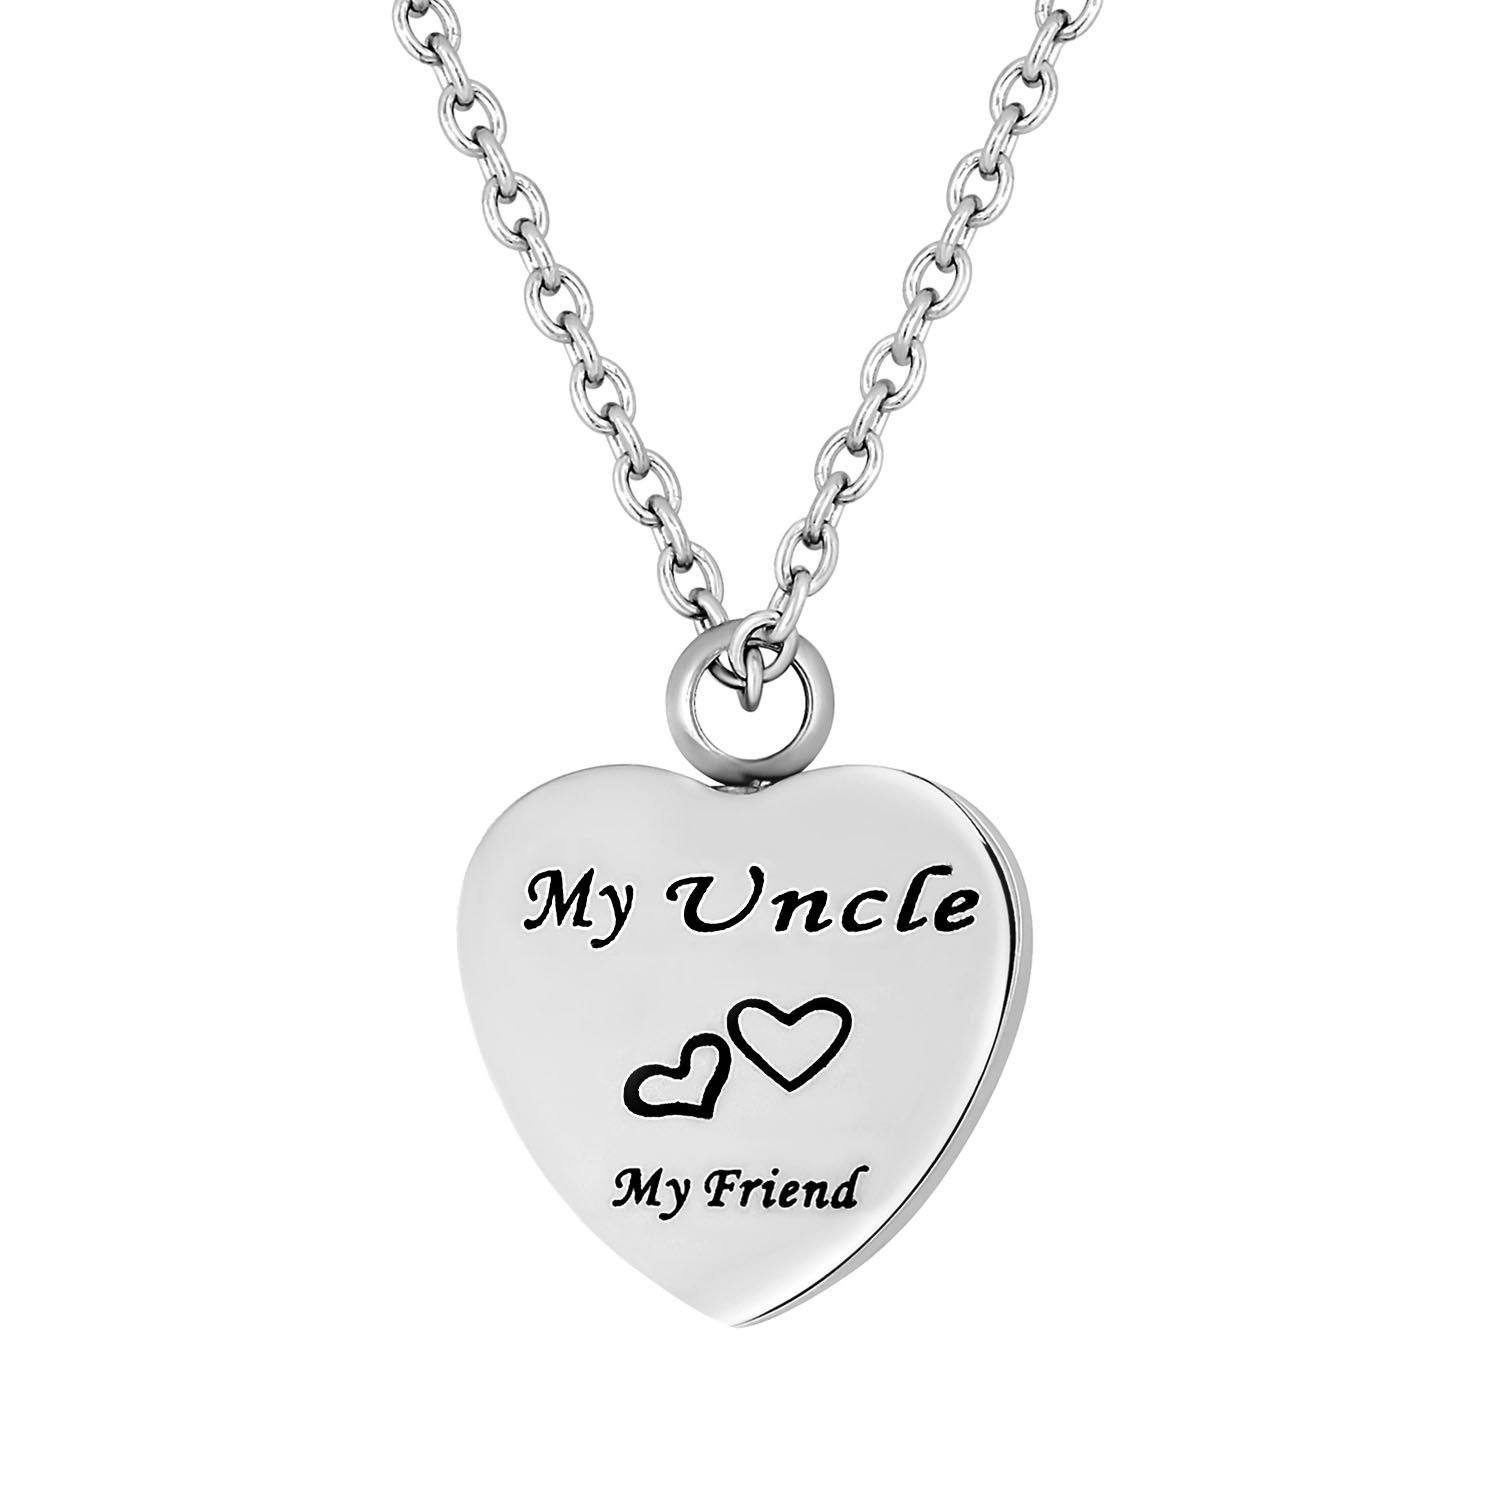 My uncle cremation necklace for ashes urn cremation jewelry cremation jewelry necklace for ashes my uncle aloadofball Choice Image